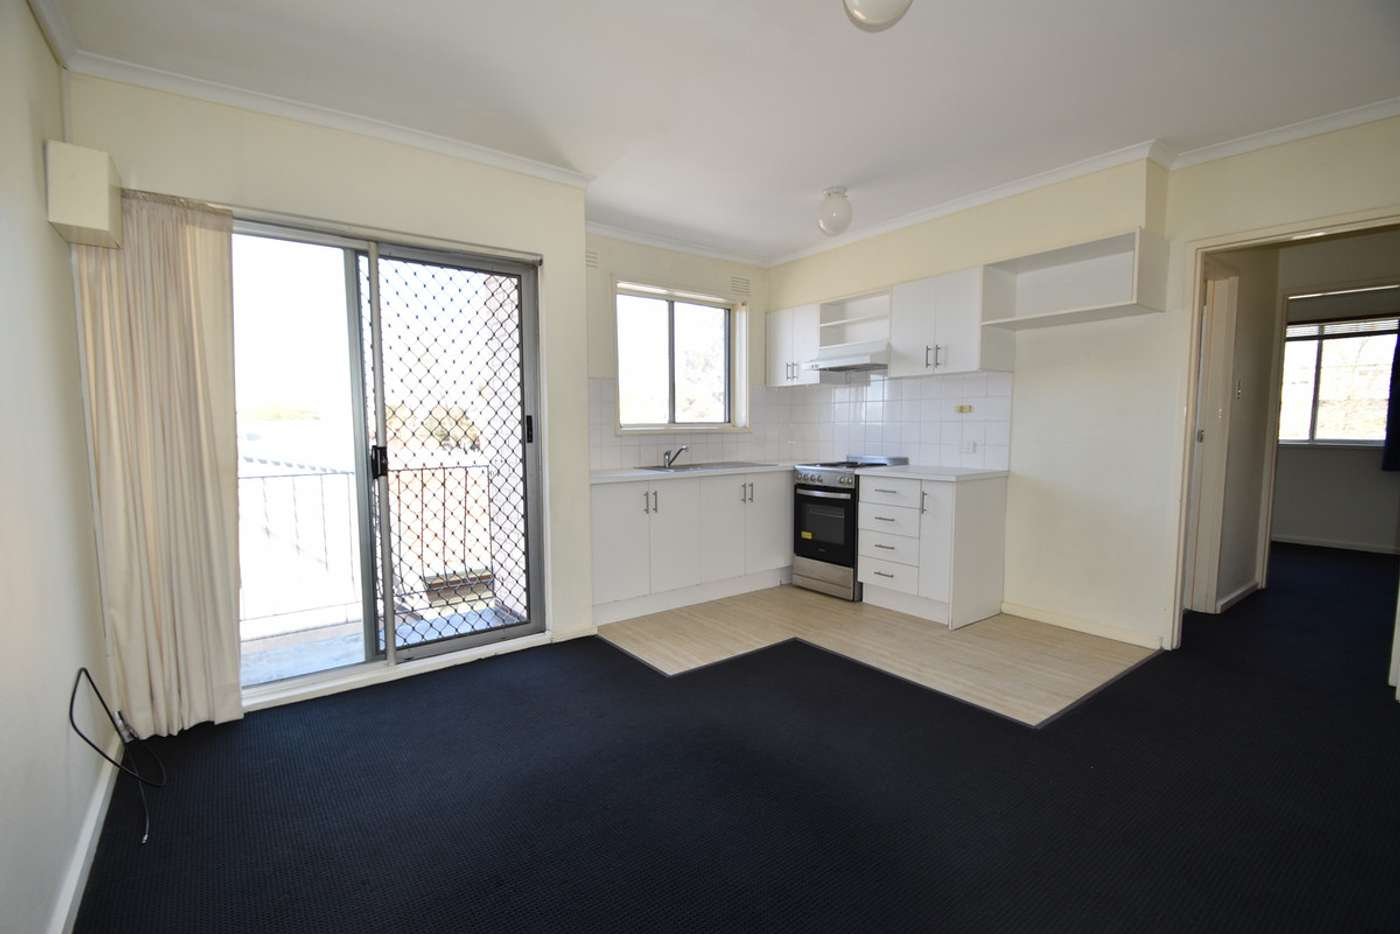 Main view of Homely apartment listing, 4/176 Liardet Street, Port Melbourne VIC 3207